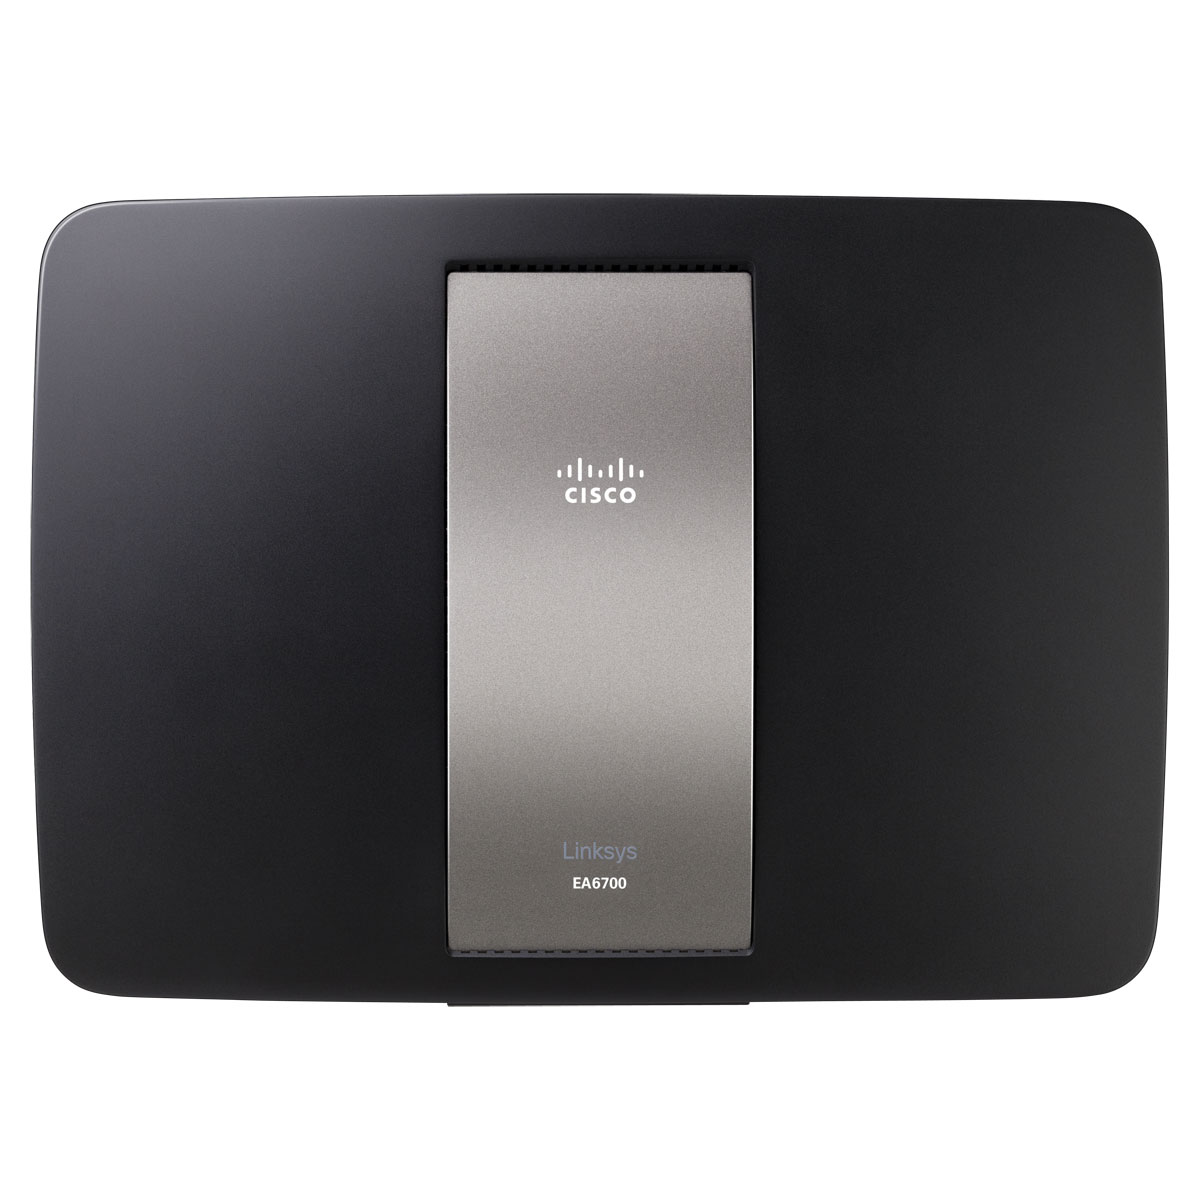 linksys ea6700 modem routeur linksys sur ldlc. Black Bedroom Furniture Sets. Home Design Ideas